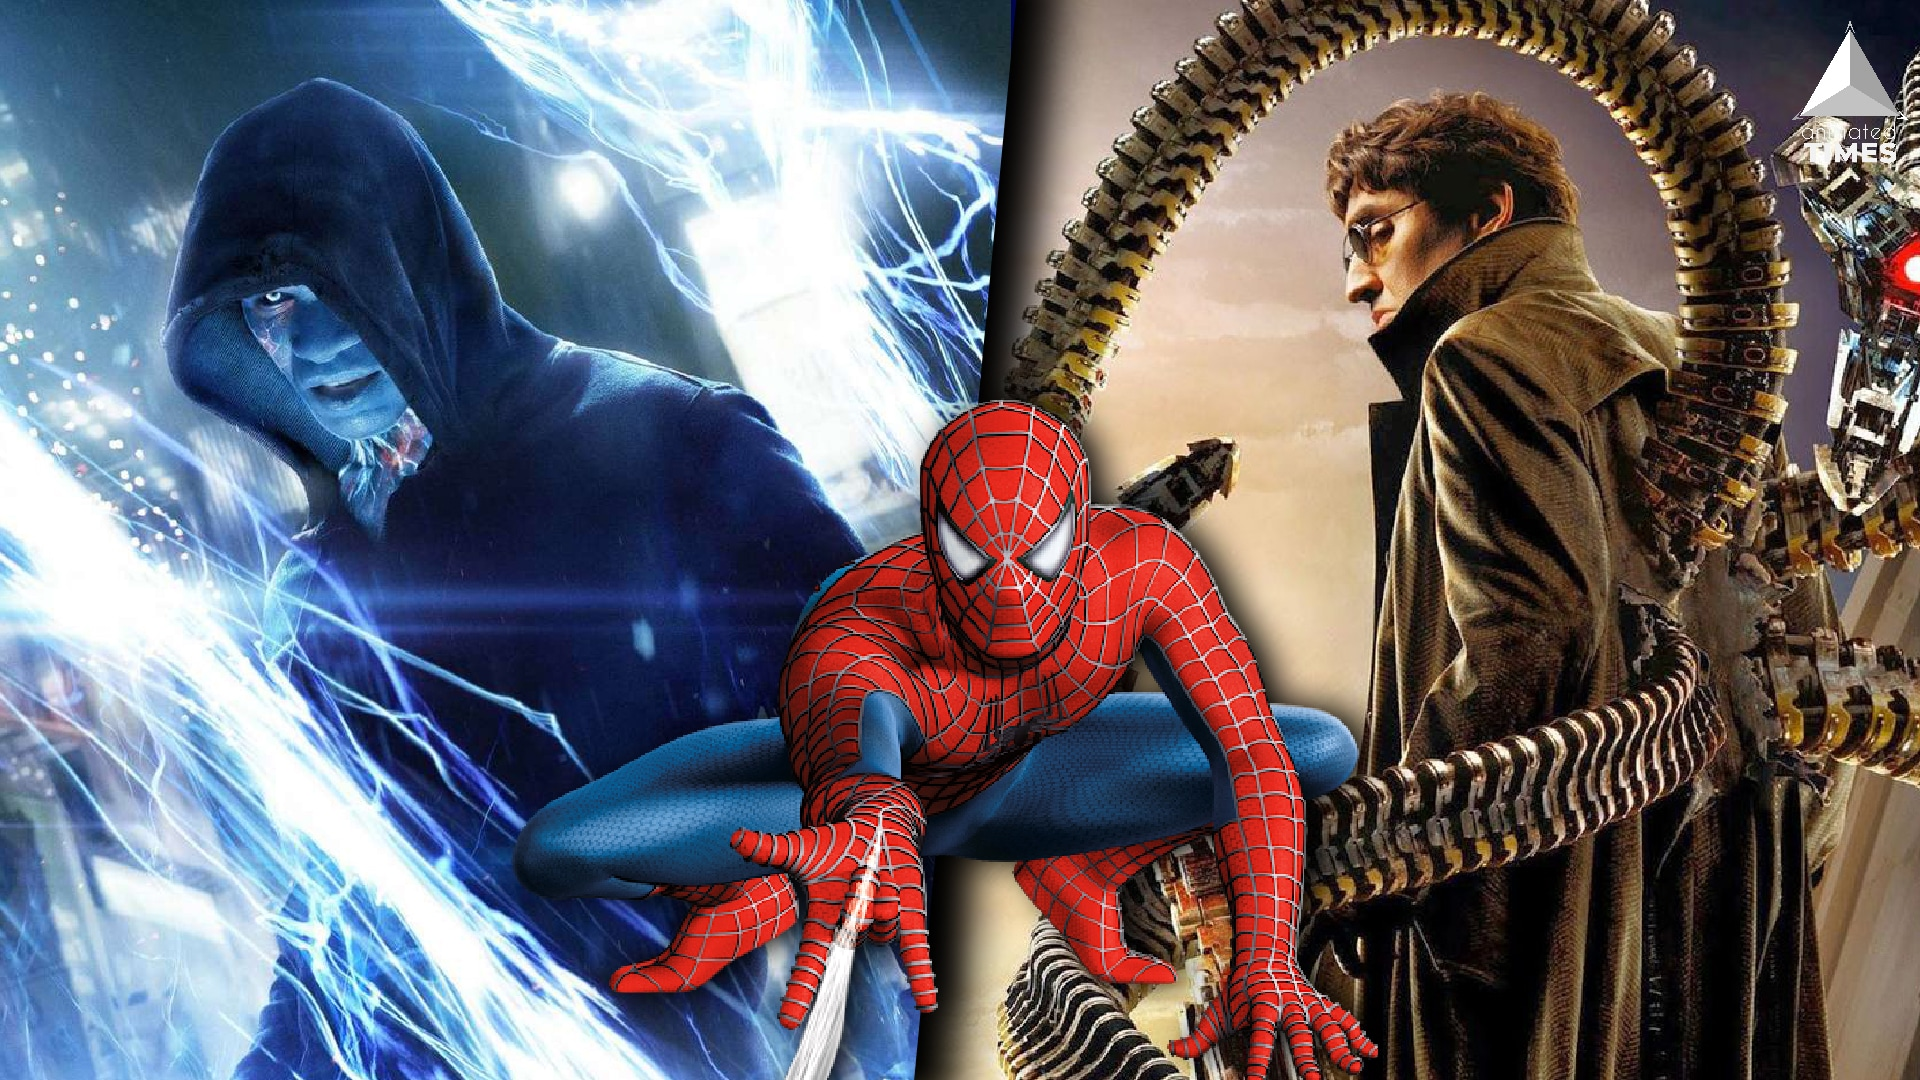 Spiderman 3 Theory: How will Doctor Octopus and Electro Return? - Animated  Times